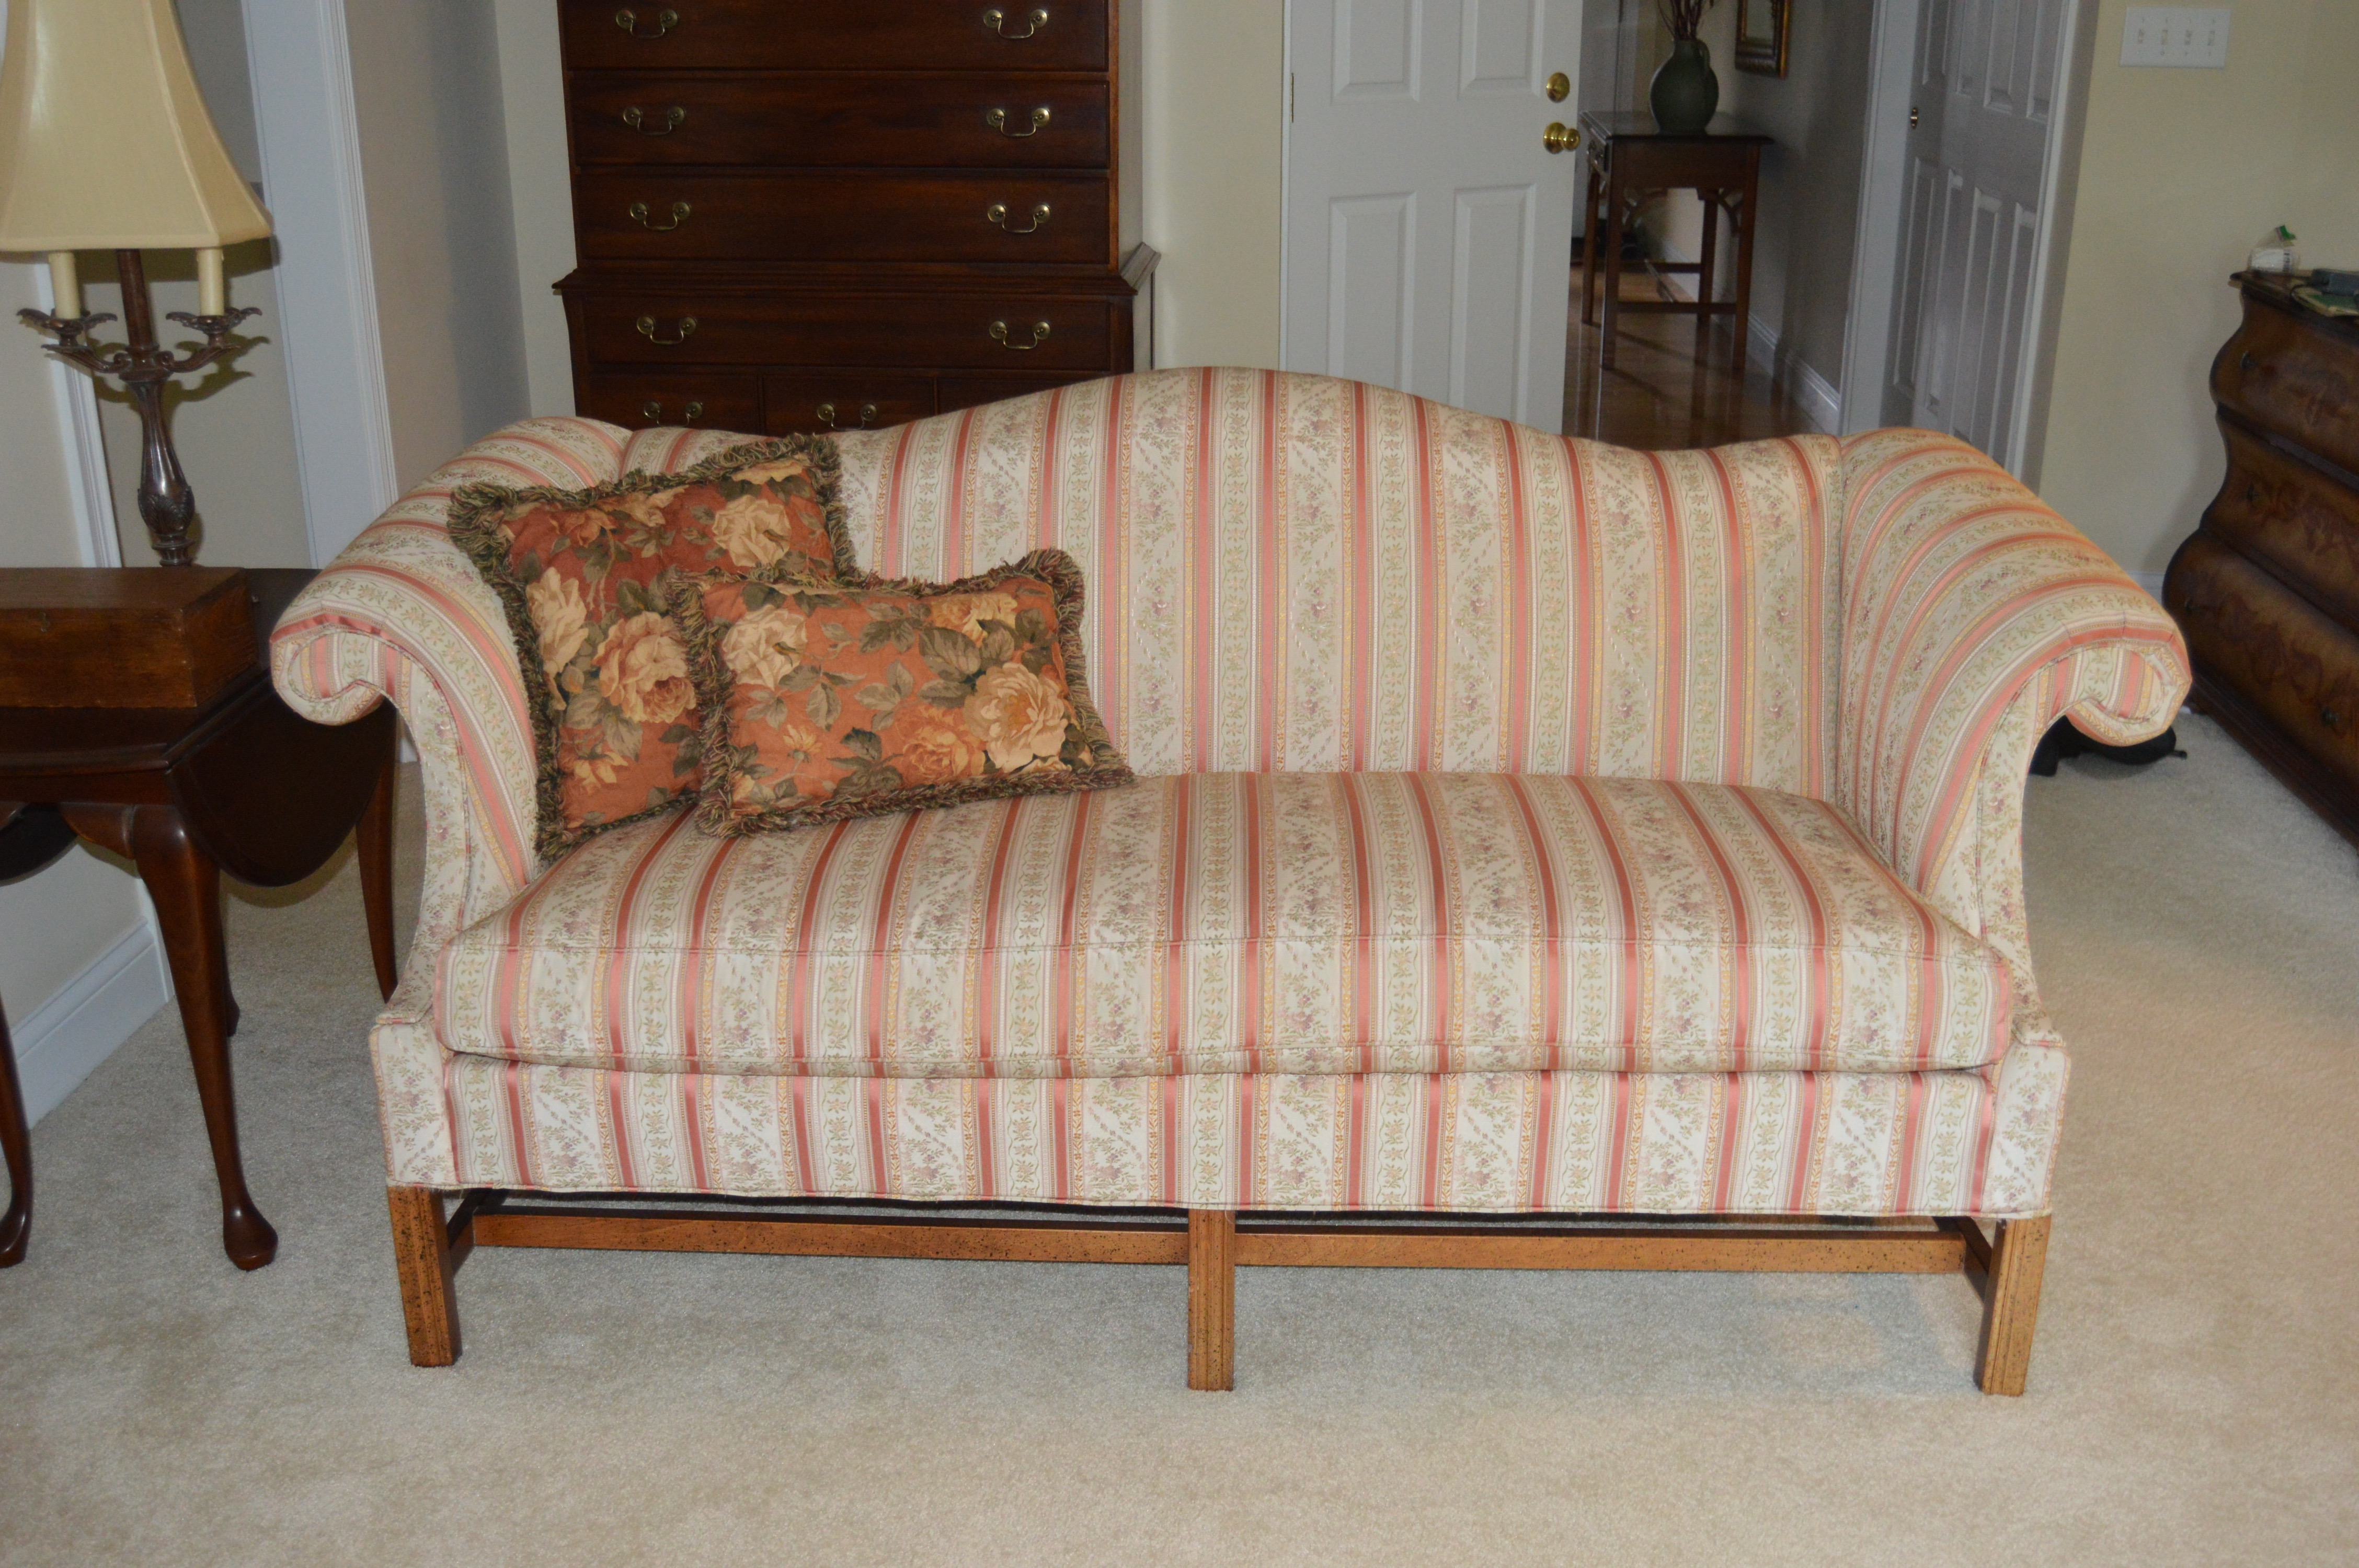 hickory fry sofa baja convert a couch and bed reviews chippendale style camelback by furniture